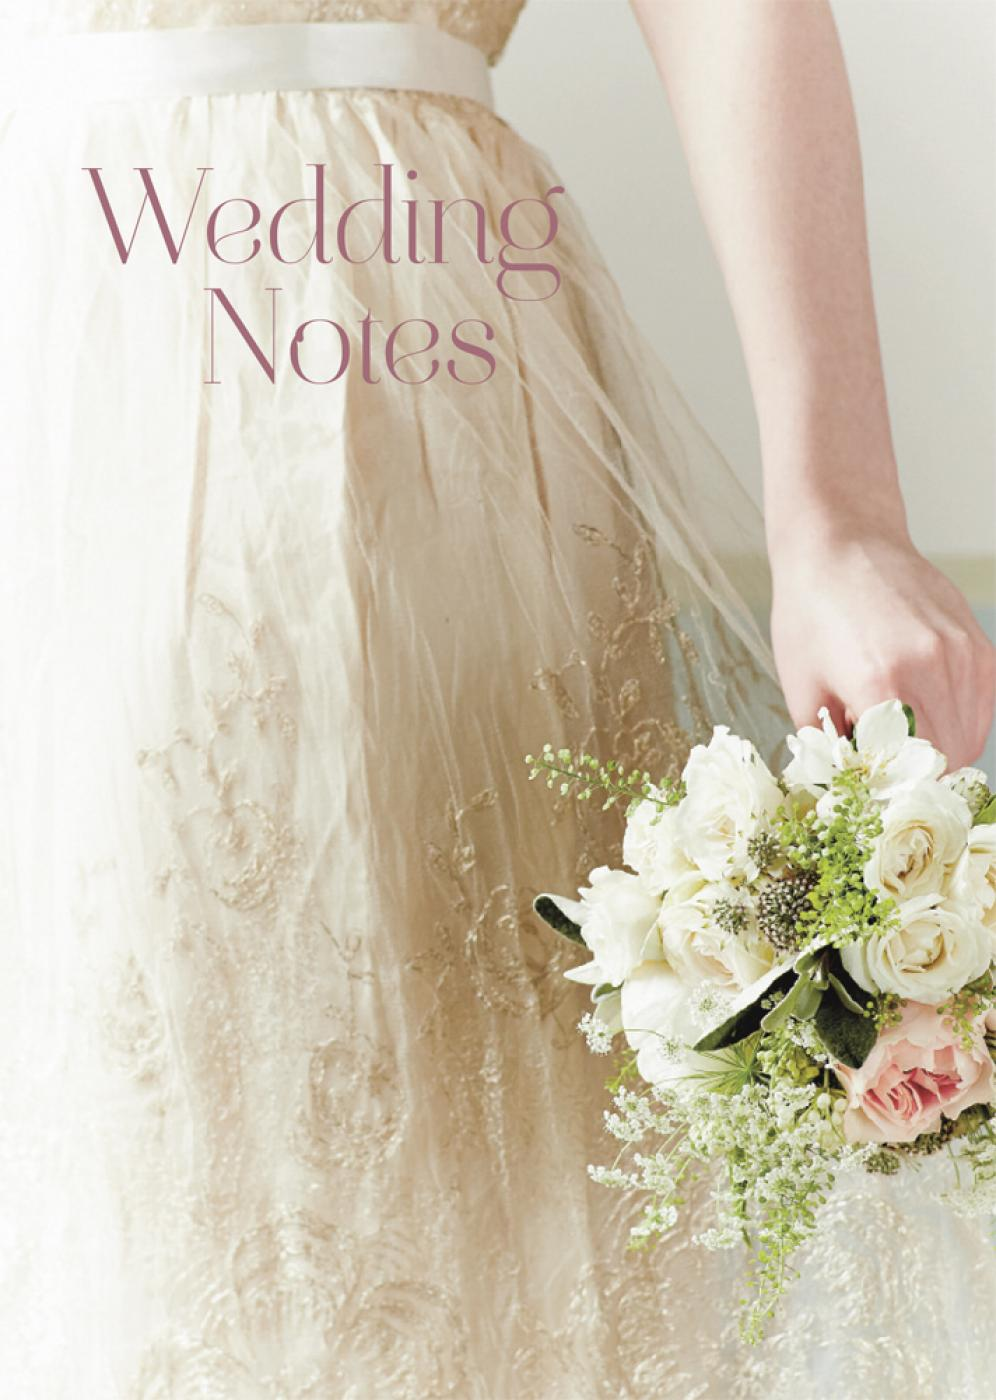 Wedding Notes ISBN: 9781849756419